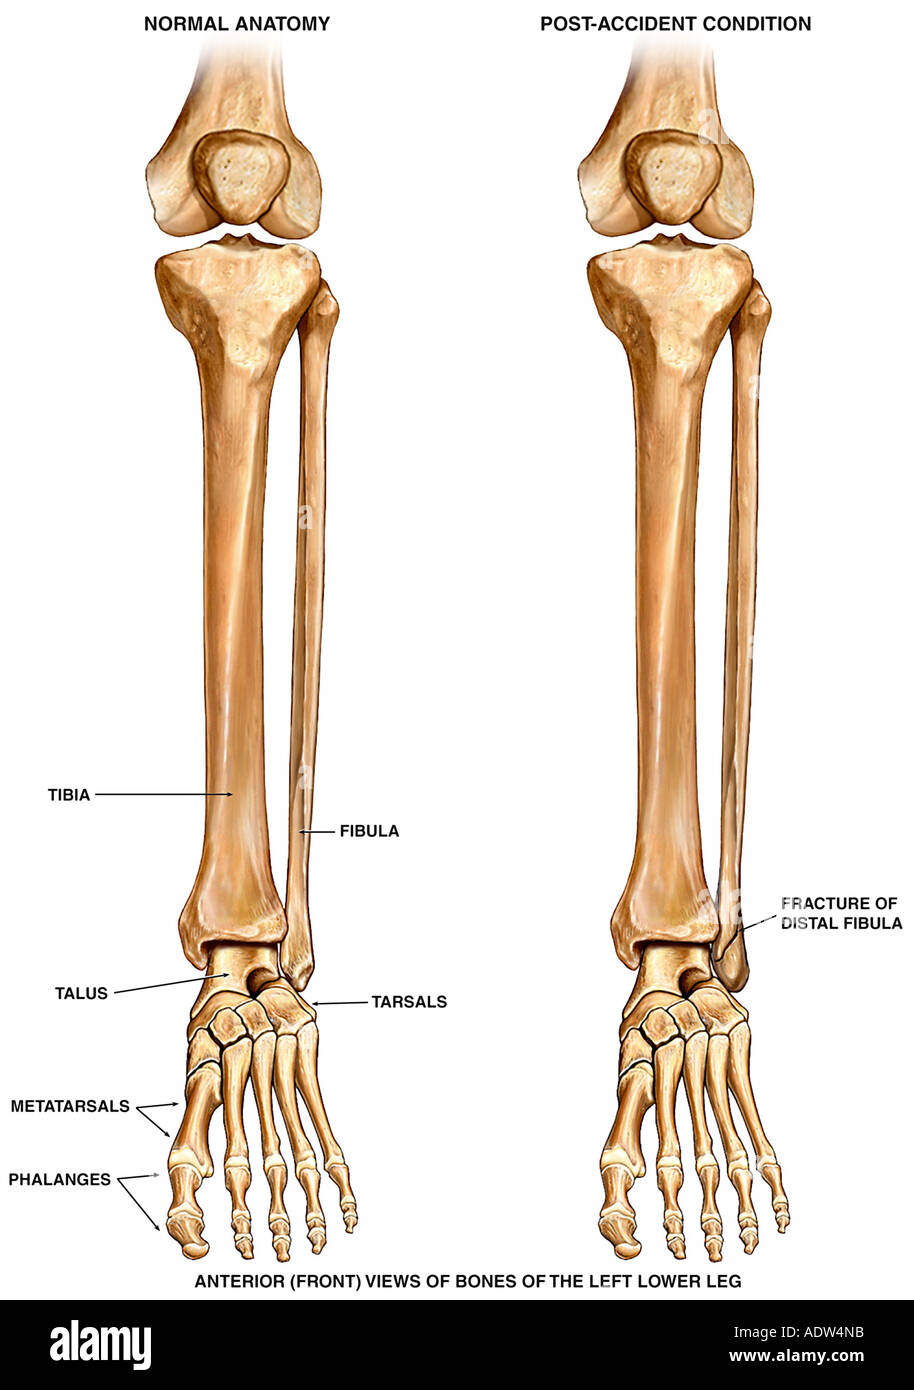 Medial Malleolus Stock Photos & Medial Malleolus Stock Images - Alamy